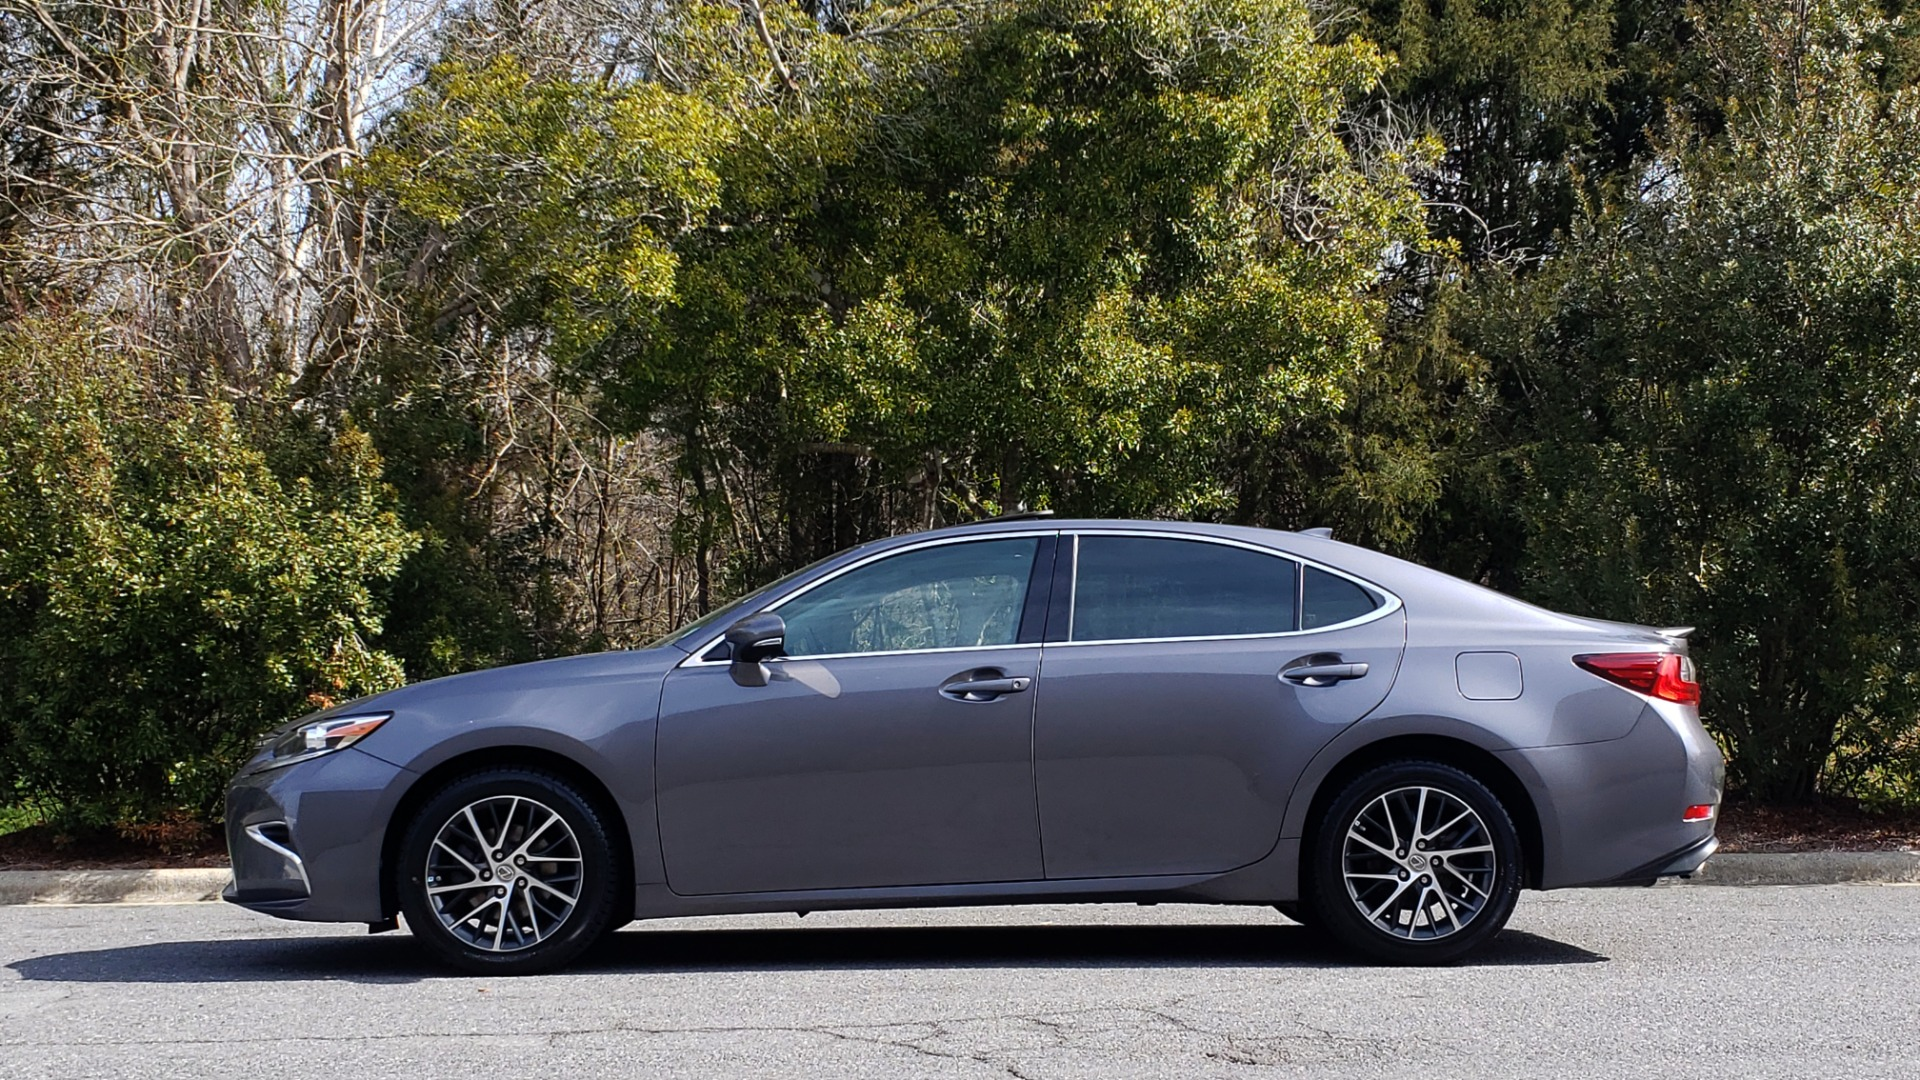 Used 2016 Lexus ES 350 4-DR PREMIUM / SUNROOF / BSM / REARVIEW / VENT STS for sale Sold at Formula Imports in Charlotte NC 28227 2